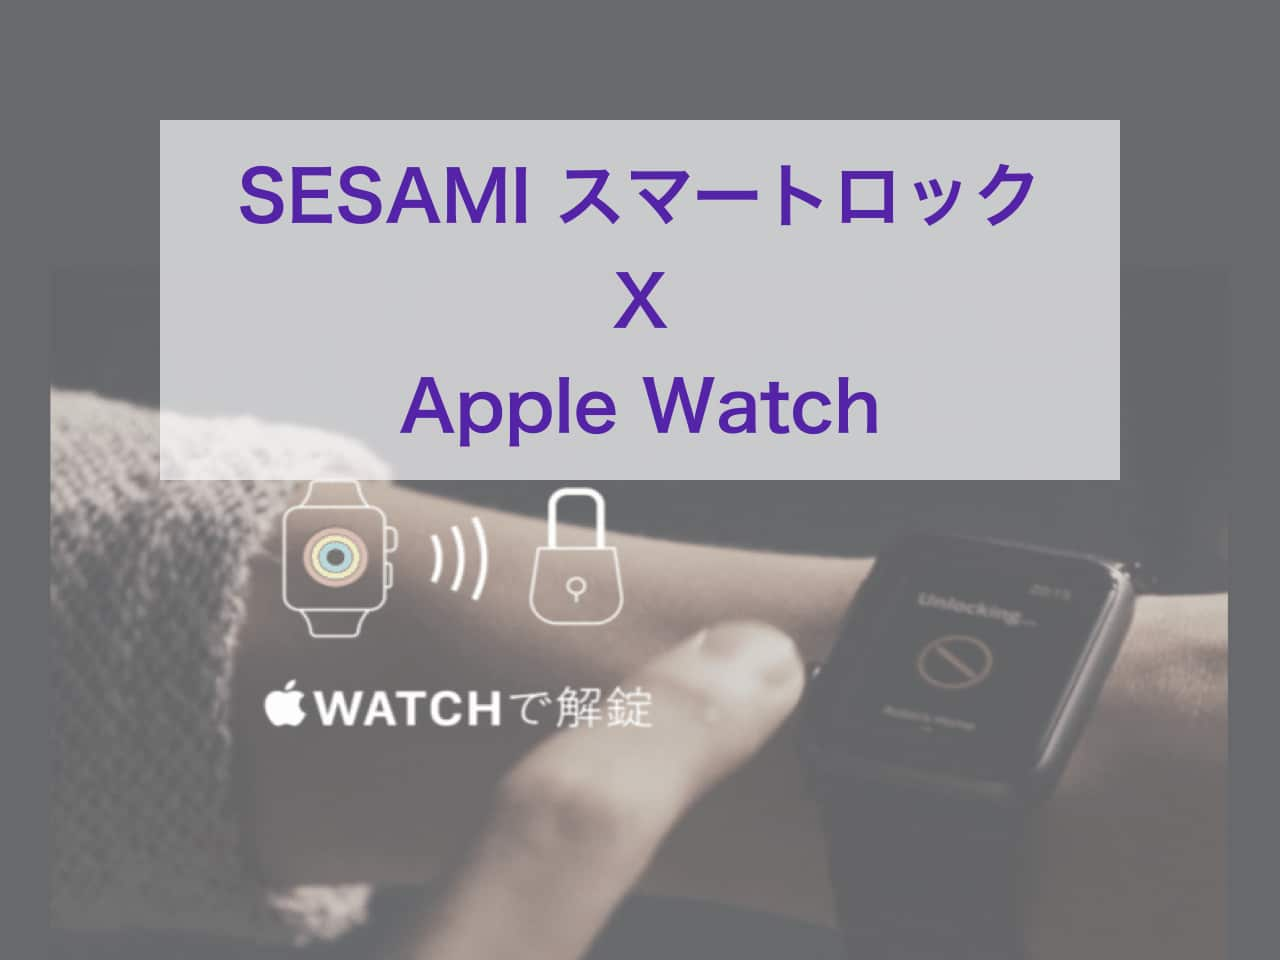 2020_05 minimal traveler, eyecatch, sesami-applewatch